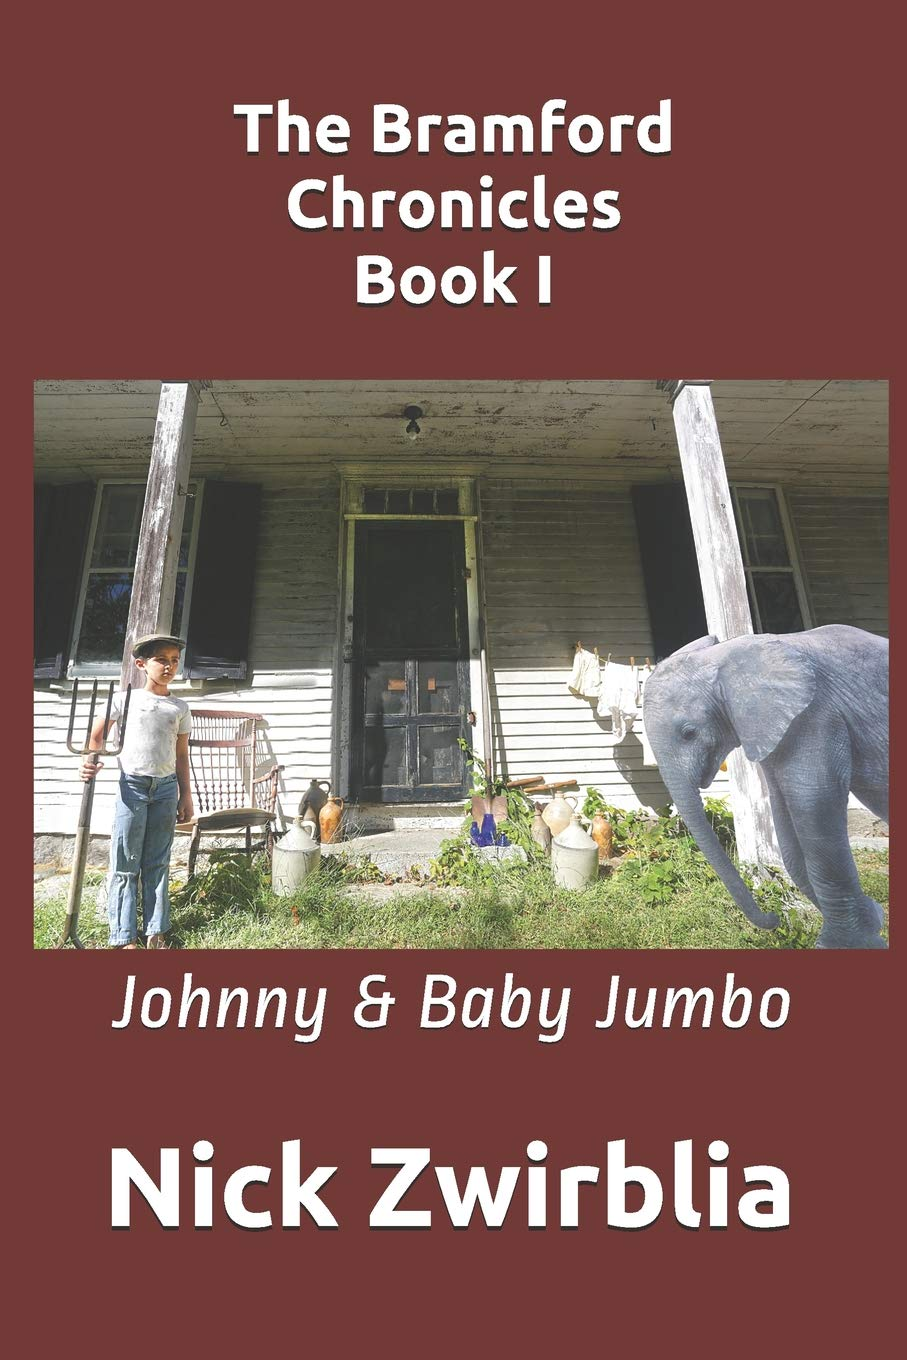 The Bramford Chronicles, Book I: Johnny & Baby Jumbo